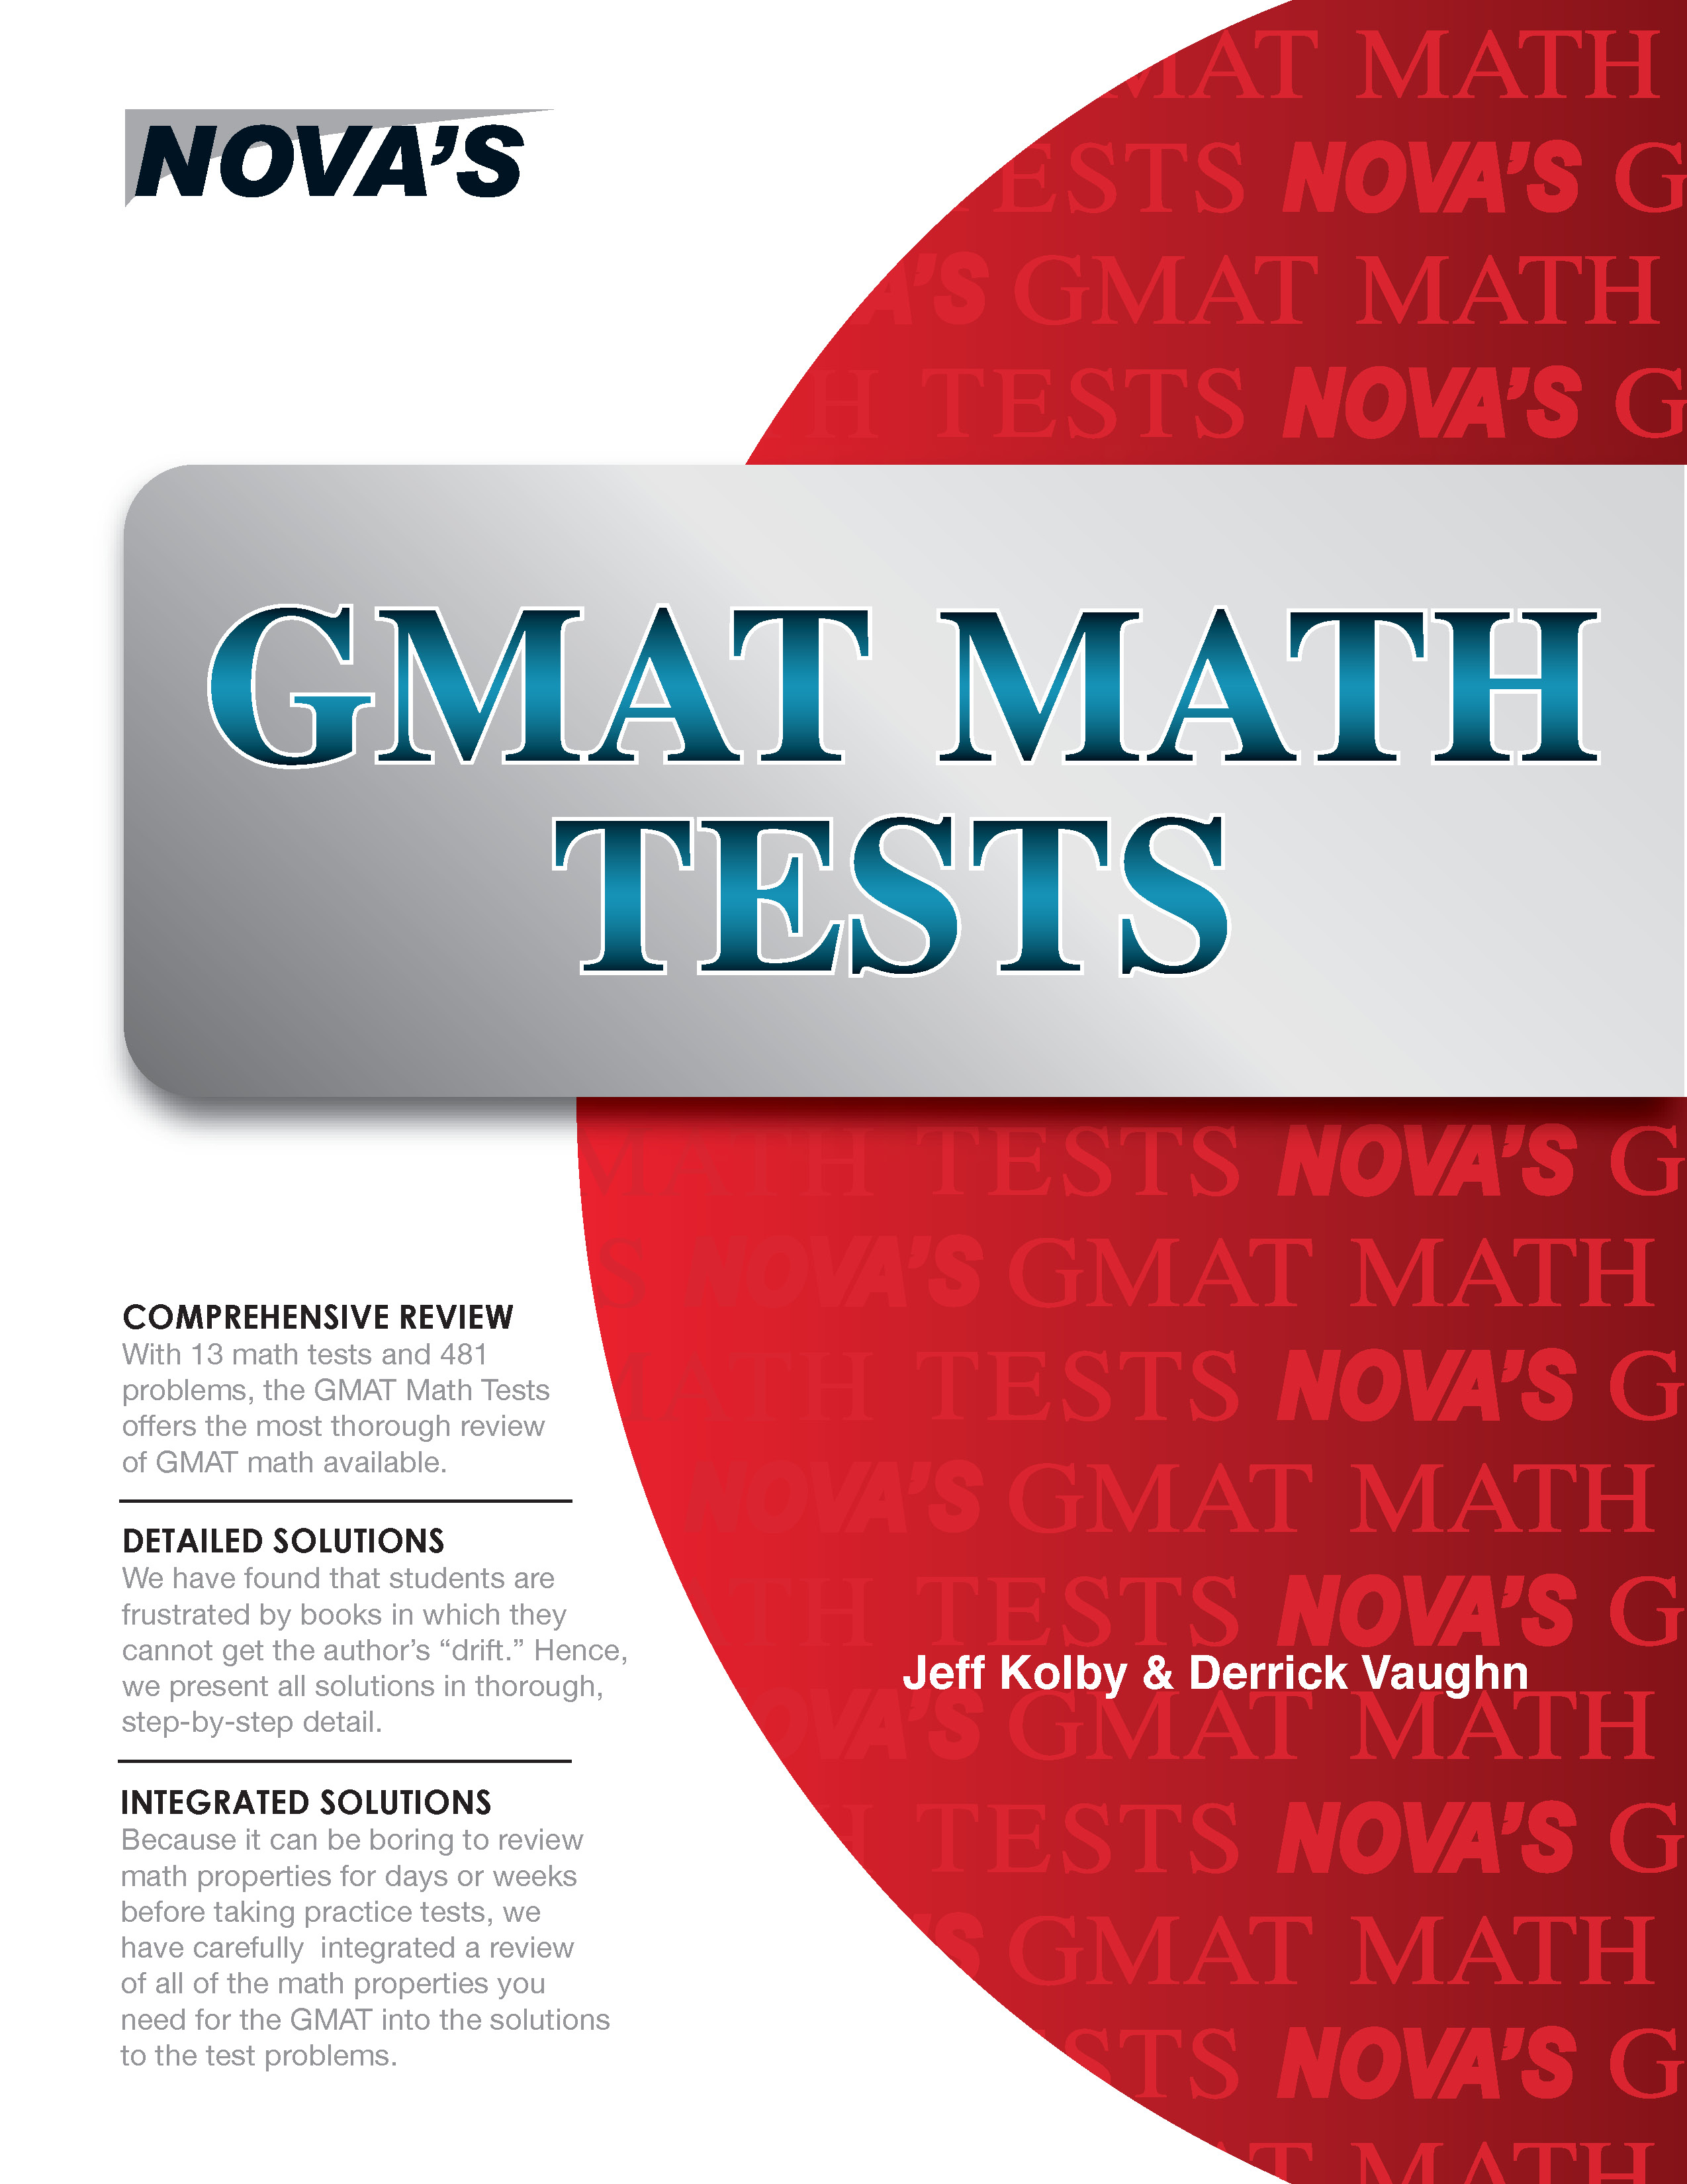 GMAT Math Tests: 13 Full-length GMAT Math Tests!